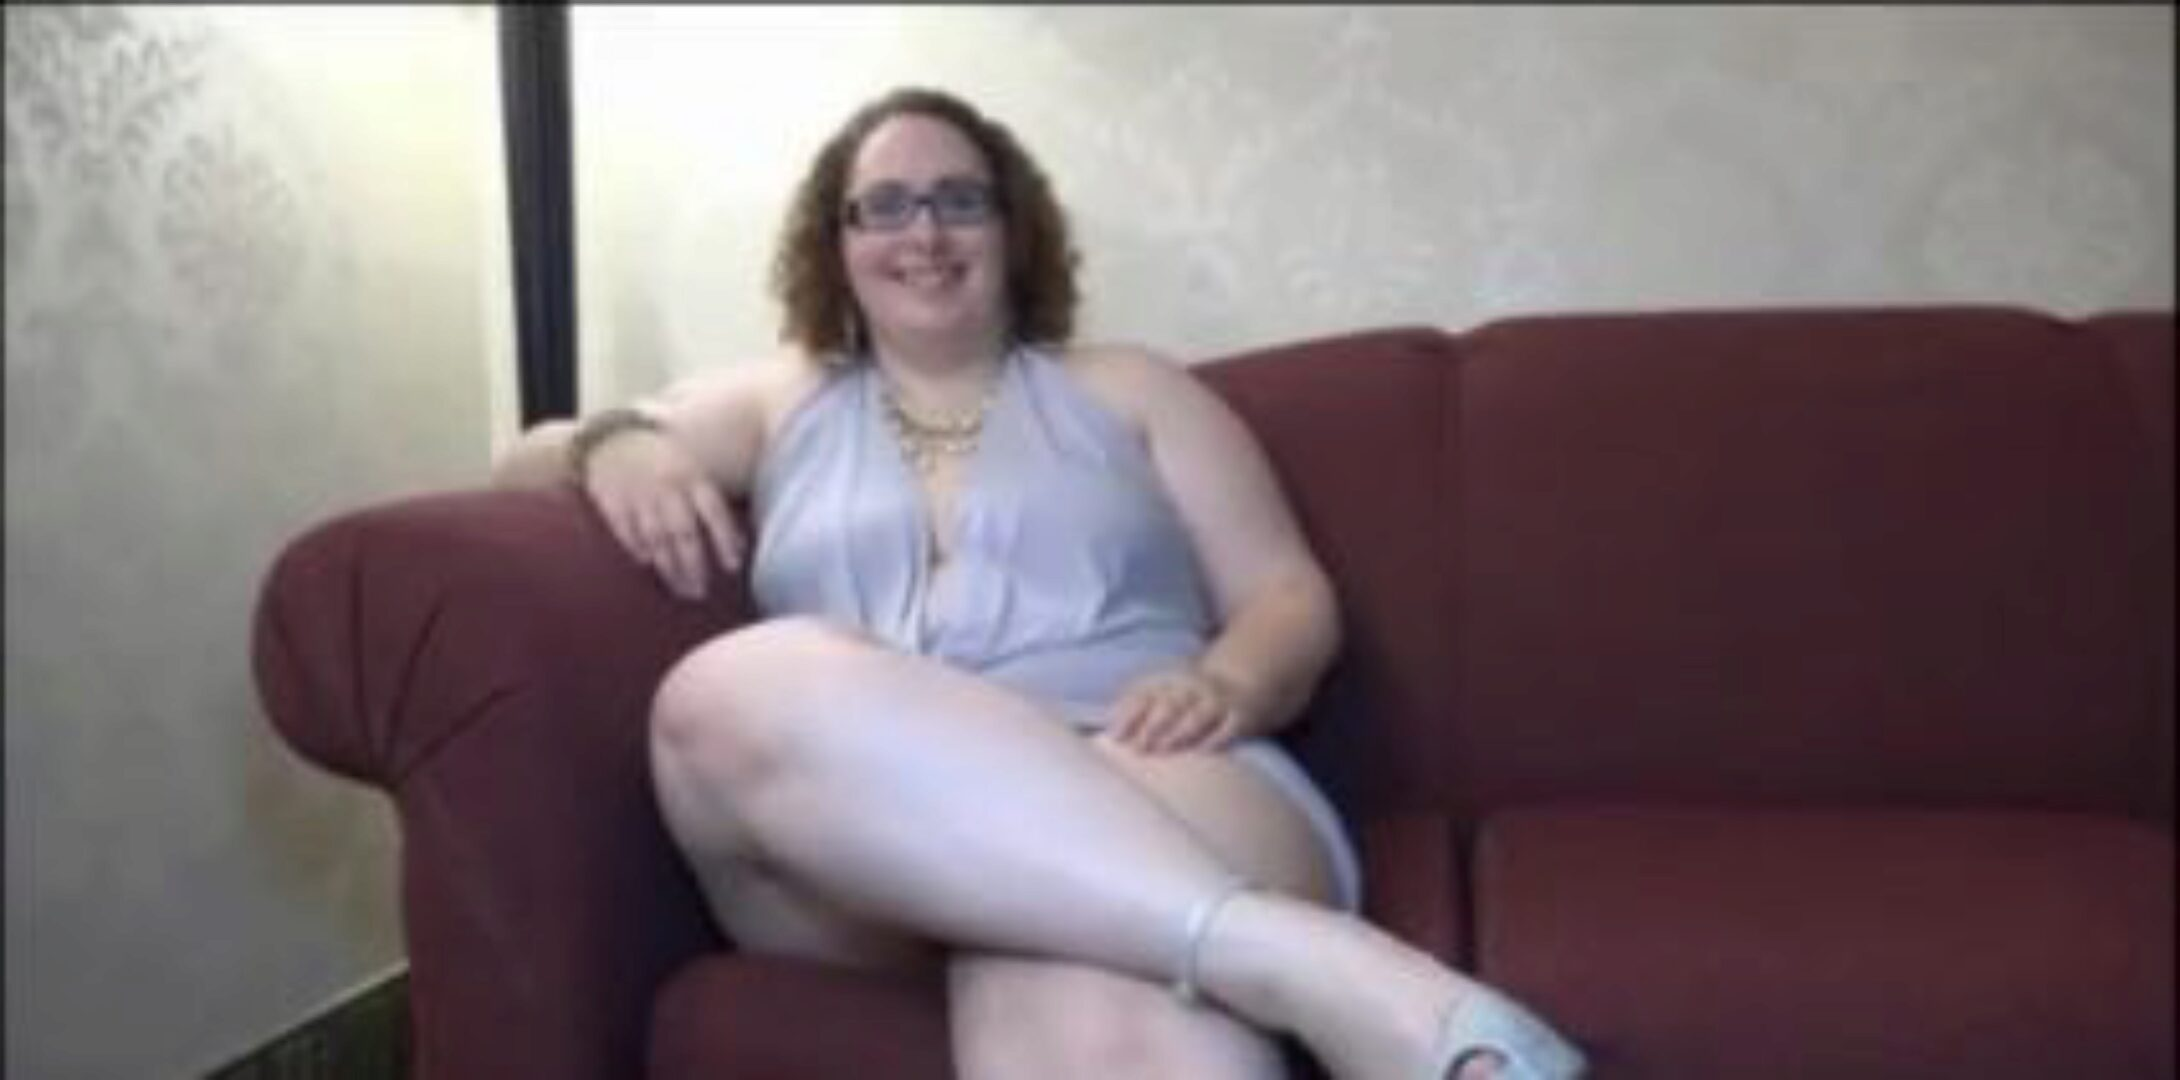 White BBW Feeling the Power of a Black Man During Sex Watch White big beautiful woman Feeling the Power of a Black Man During Sex video on xHamster - the ultimate bevy of free Free BBW & Xnxx List pornography tube vids